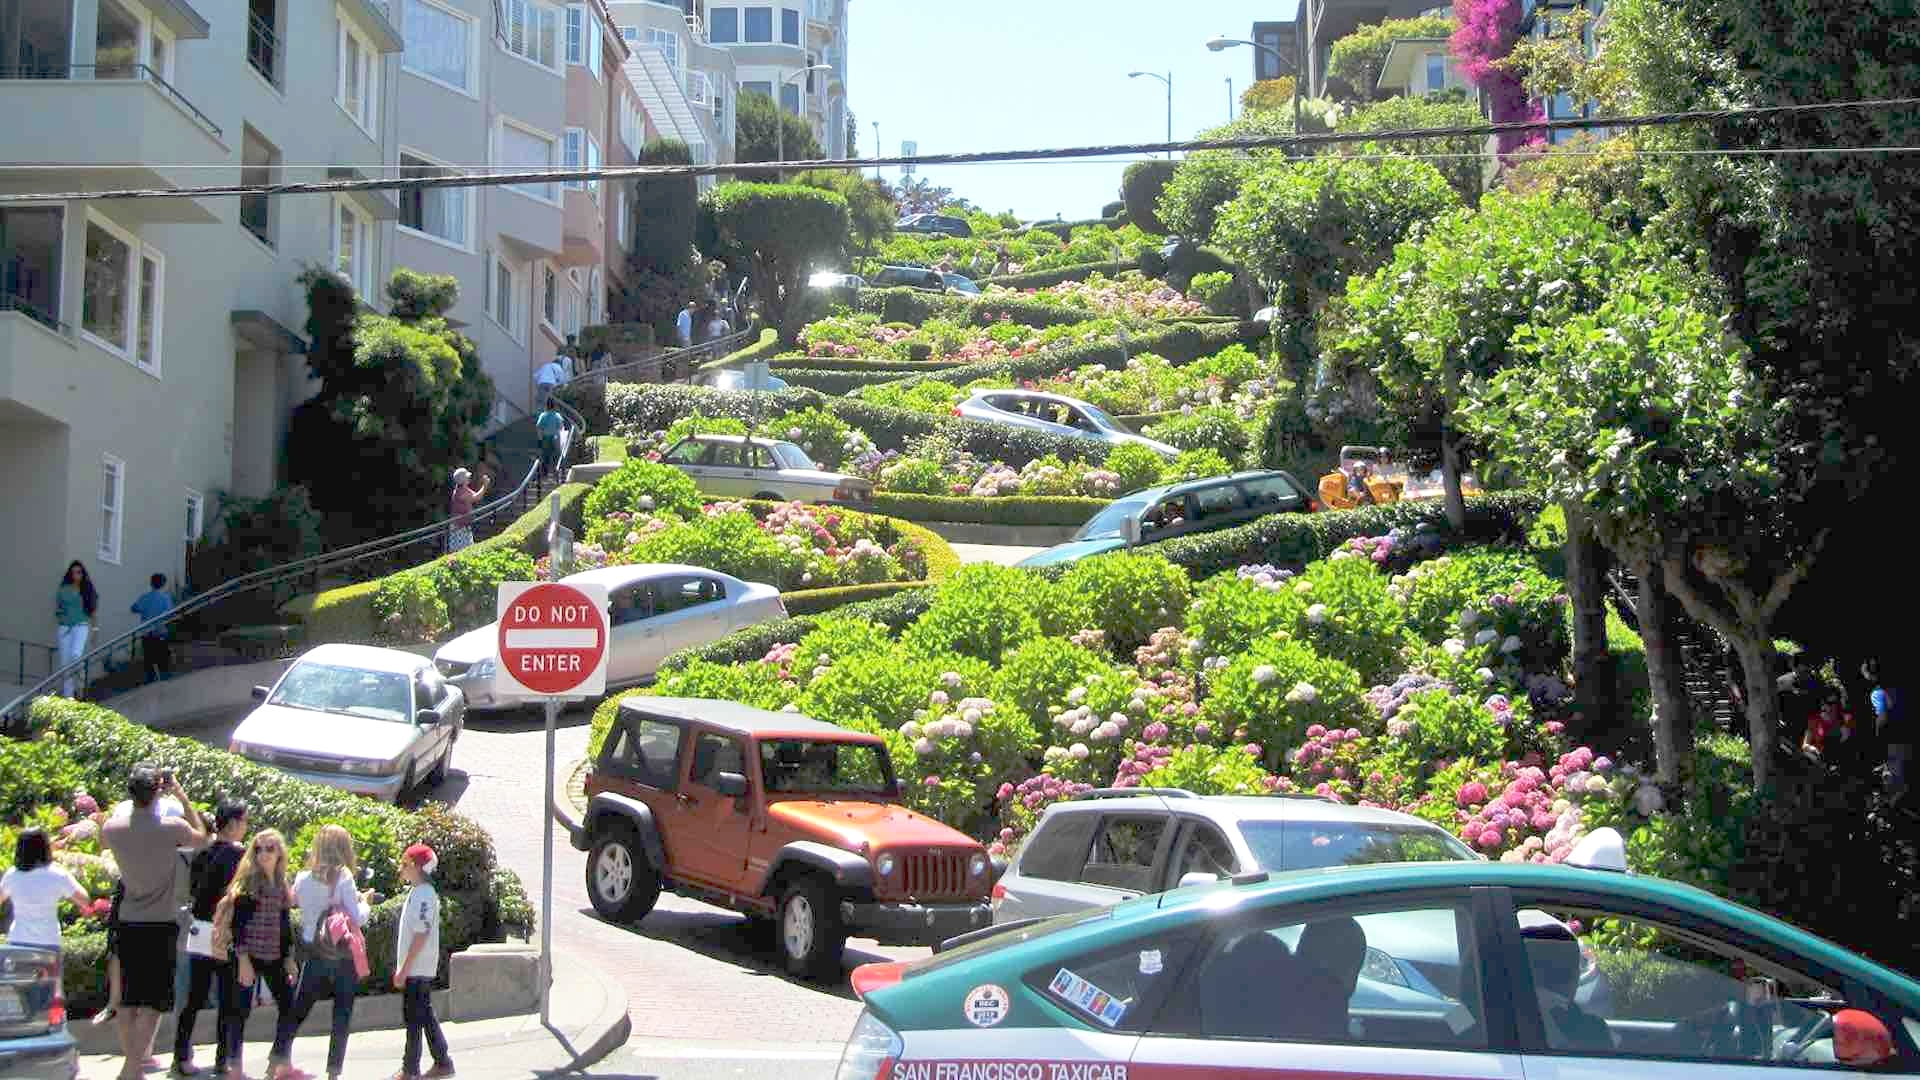 """Lombard Street is an east–west street in San Francisco, California that is famous for a steep, one-block section with eight hairpin turns. Stretching from The Presidio east to The Embarcadero (with a gap on Telegraph Hill), most of the street's western segment is a major thoroughfare designated as part of U.S. Route 101. The famous one-block section, claimed as """"the most crooked street in the world"""", is located along the eastern segment in the Russian Hill neighborhood. The street was named after Lombard Street in Philadelphia by San Francisco surveyor Jasper O'Farrell."""